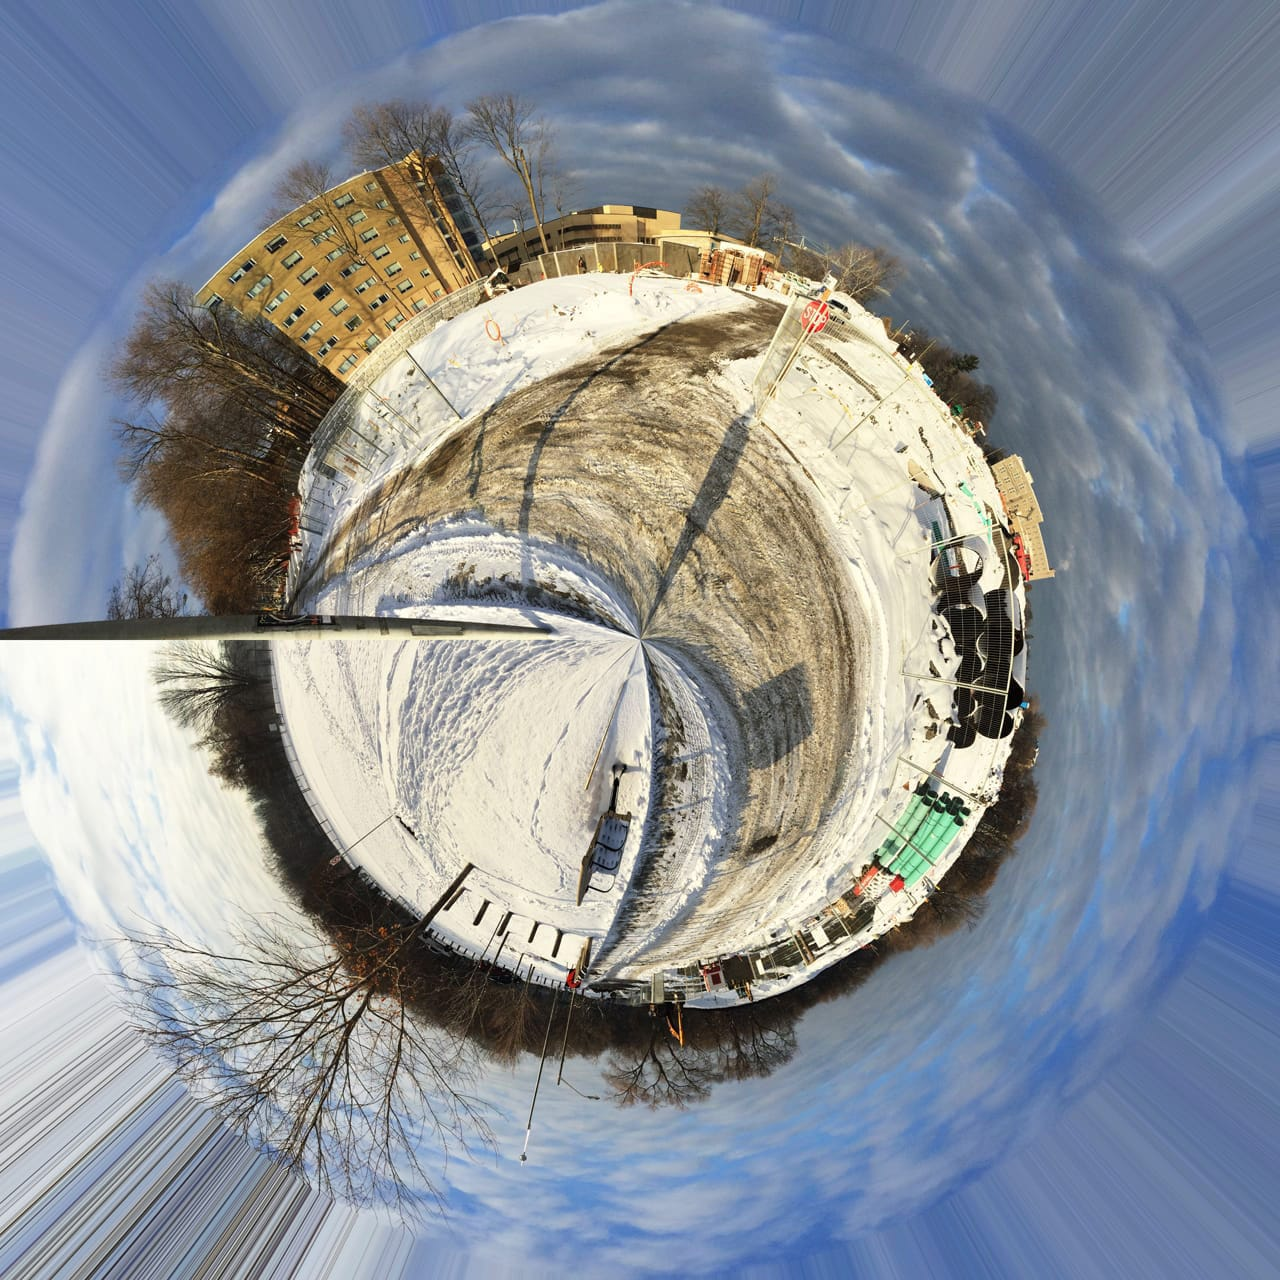 My street in Tiny Planets